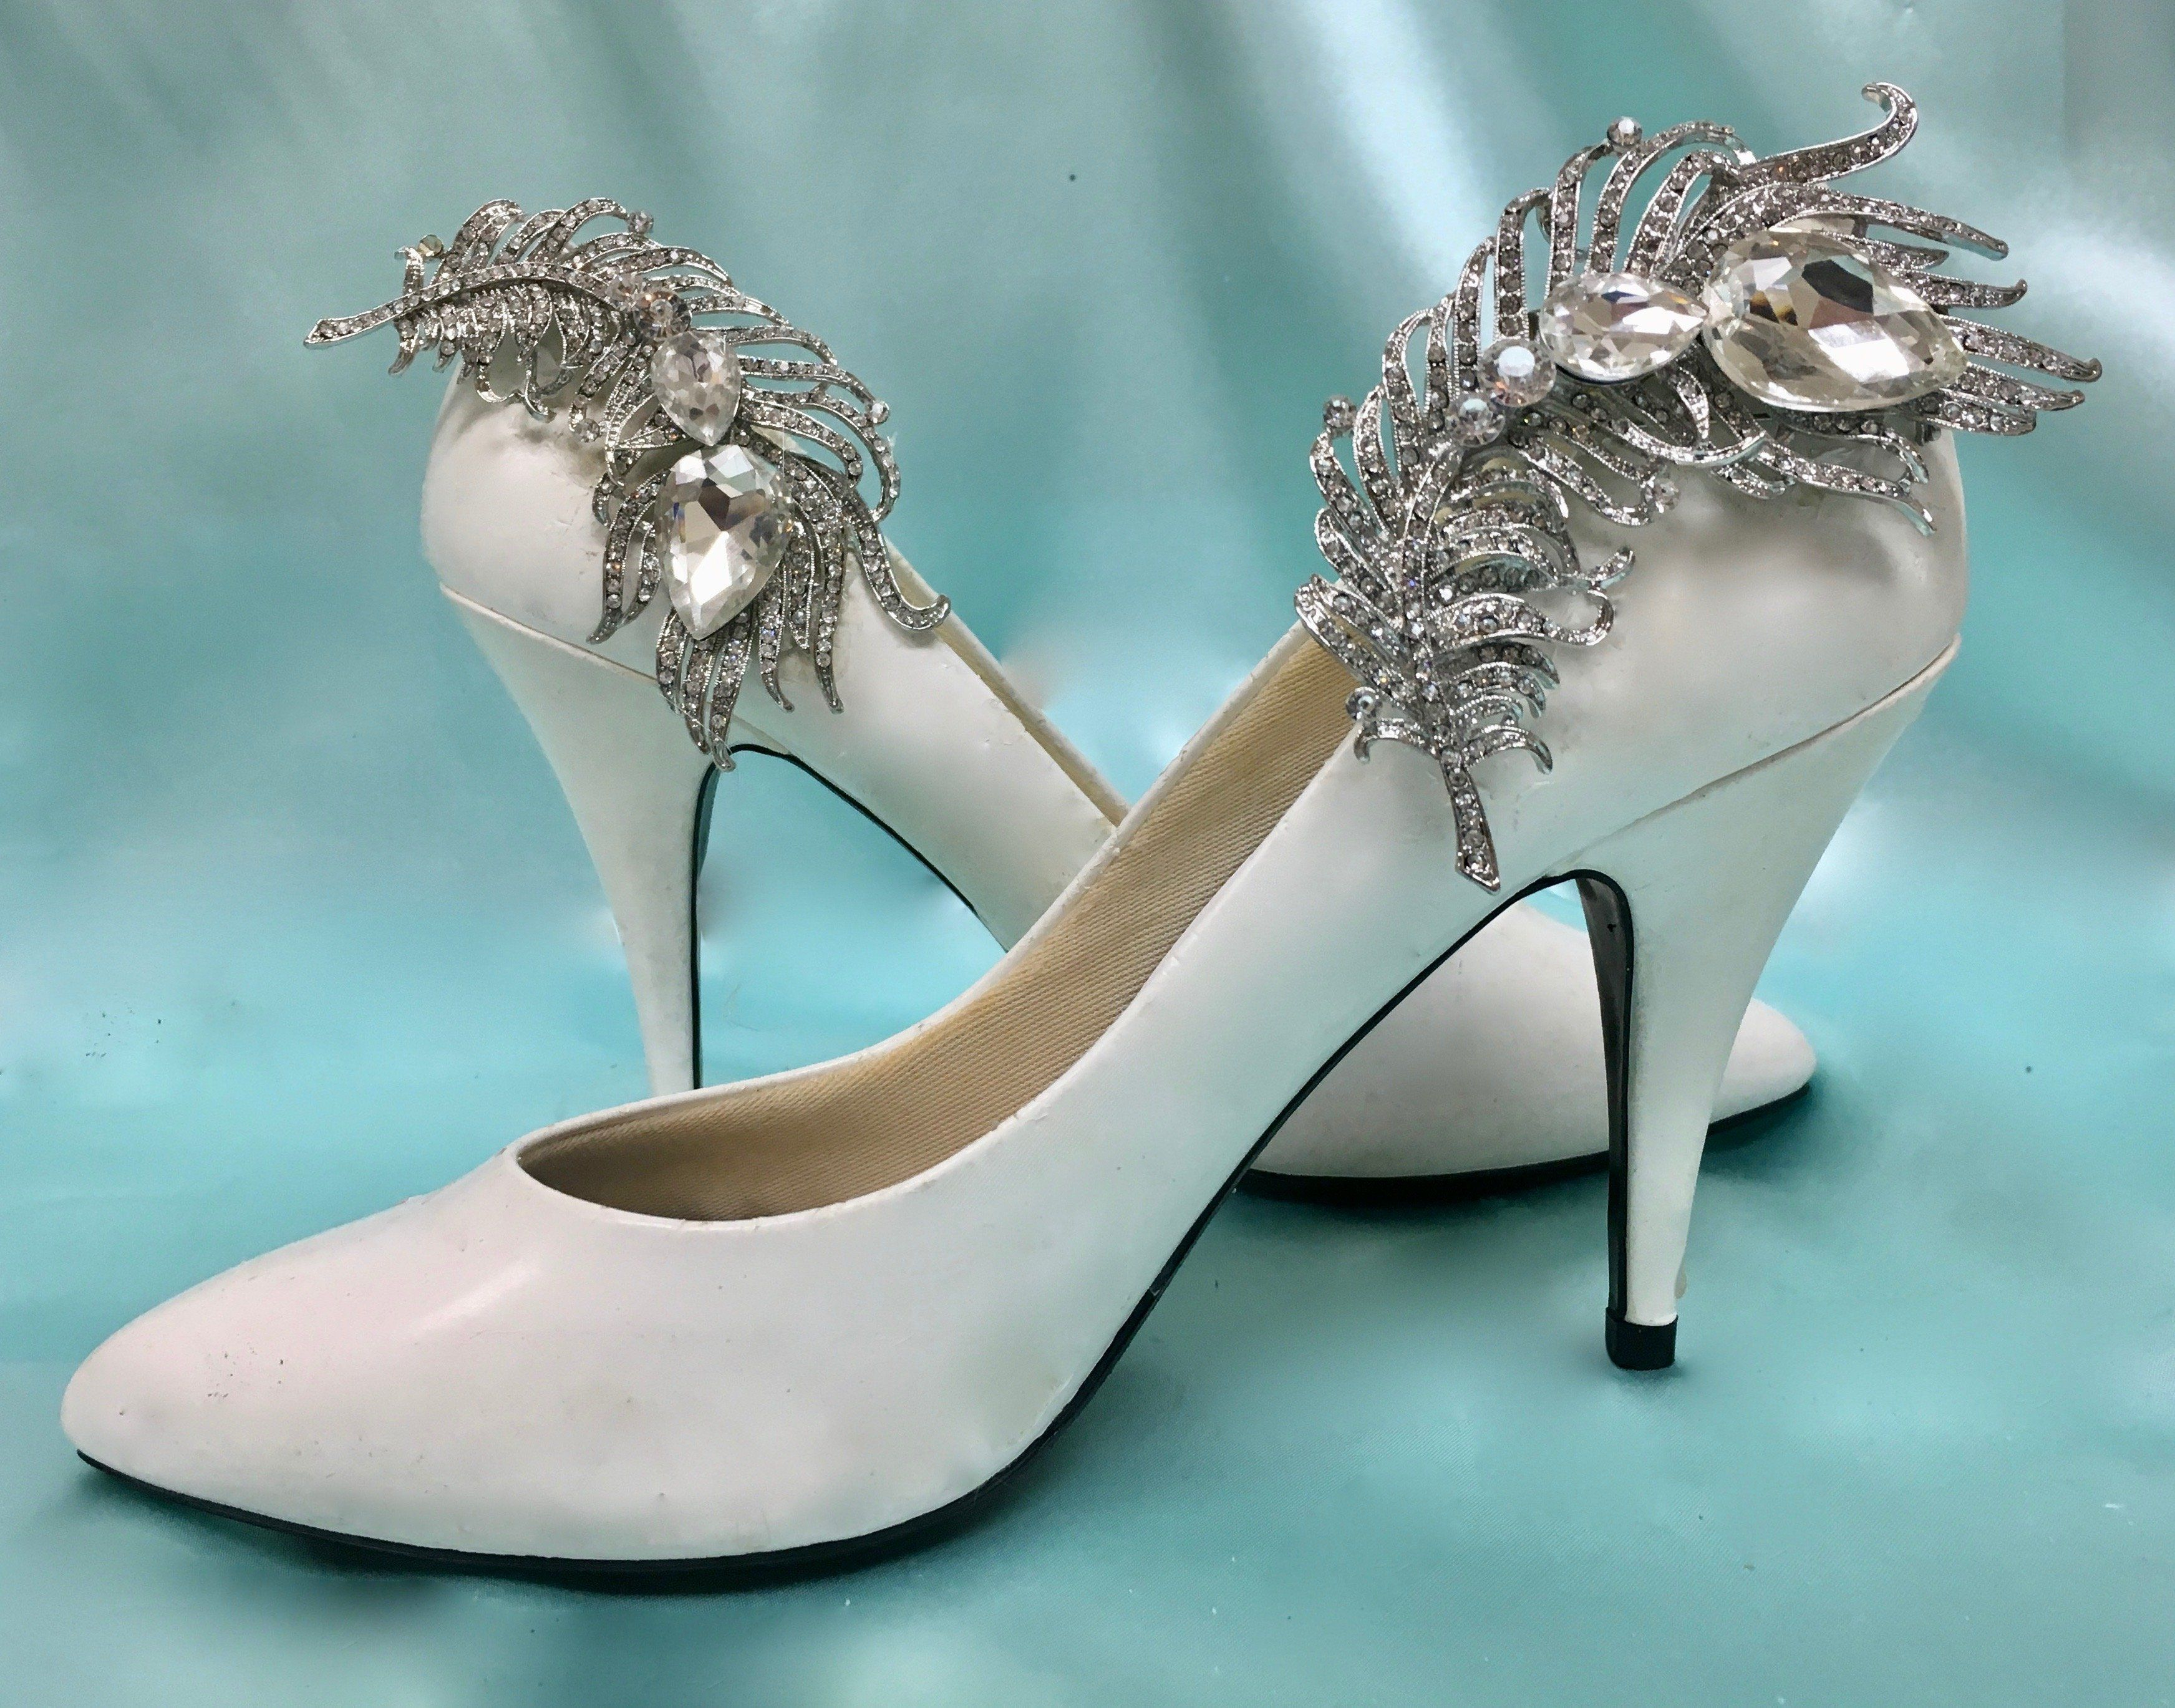 Bridal Formal Shoe Clips, Wedding Gown Accessory | Shoe clips and ...